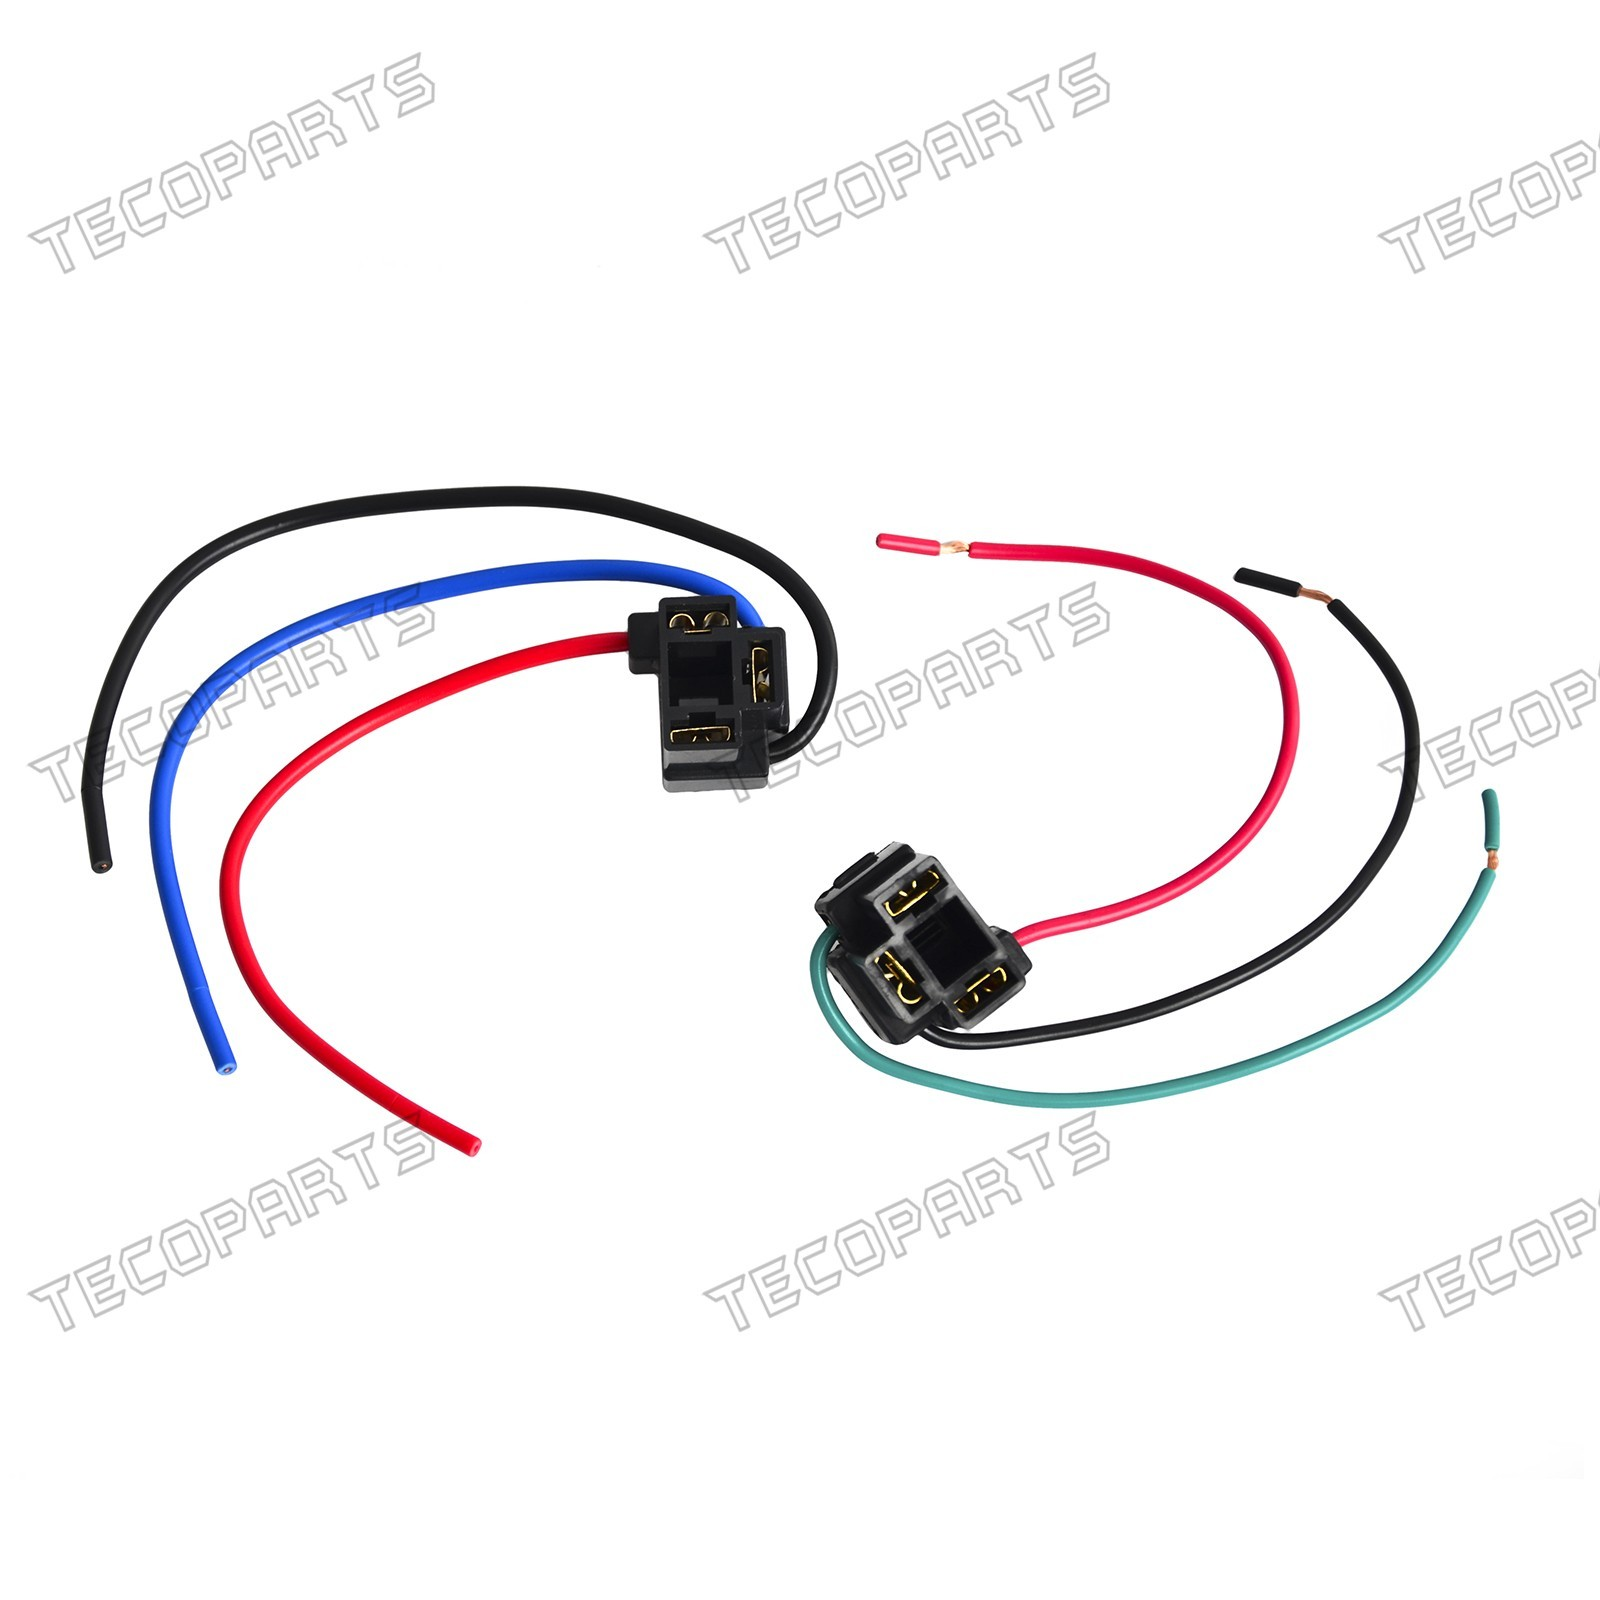 hight resolution of details about a pair h4 headlight bulb female wire harness connector wiring plug socket new